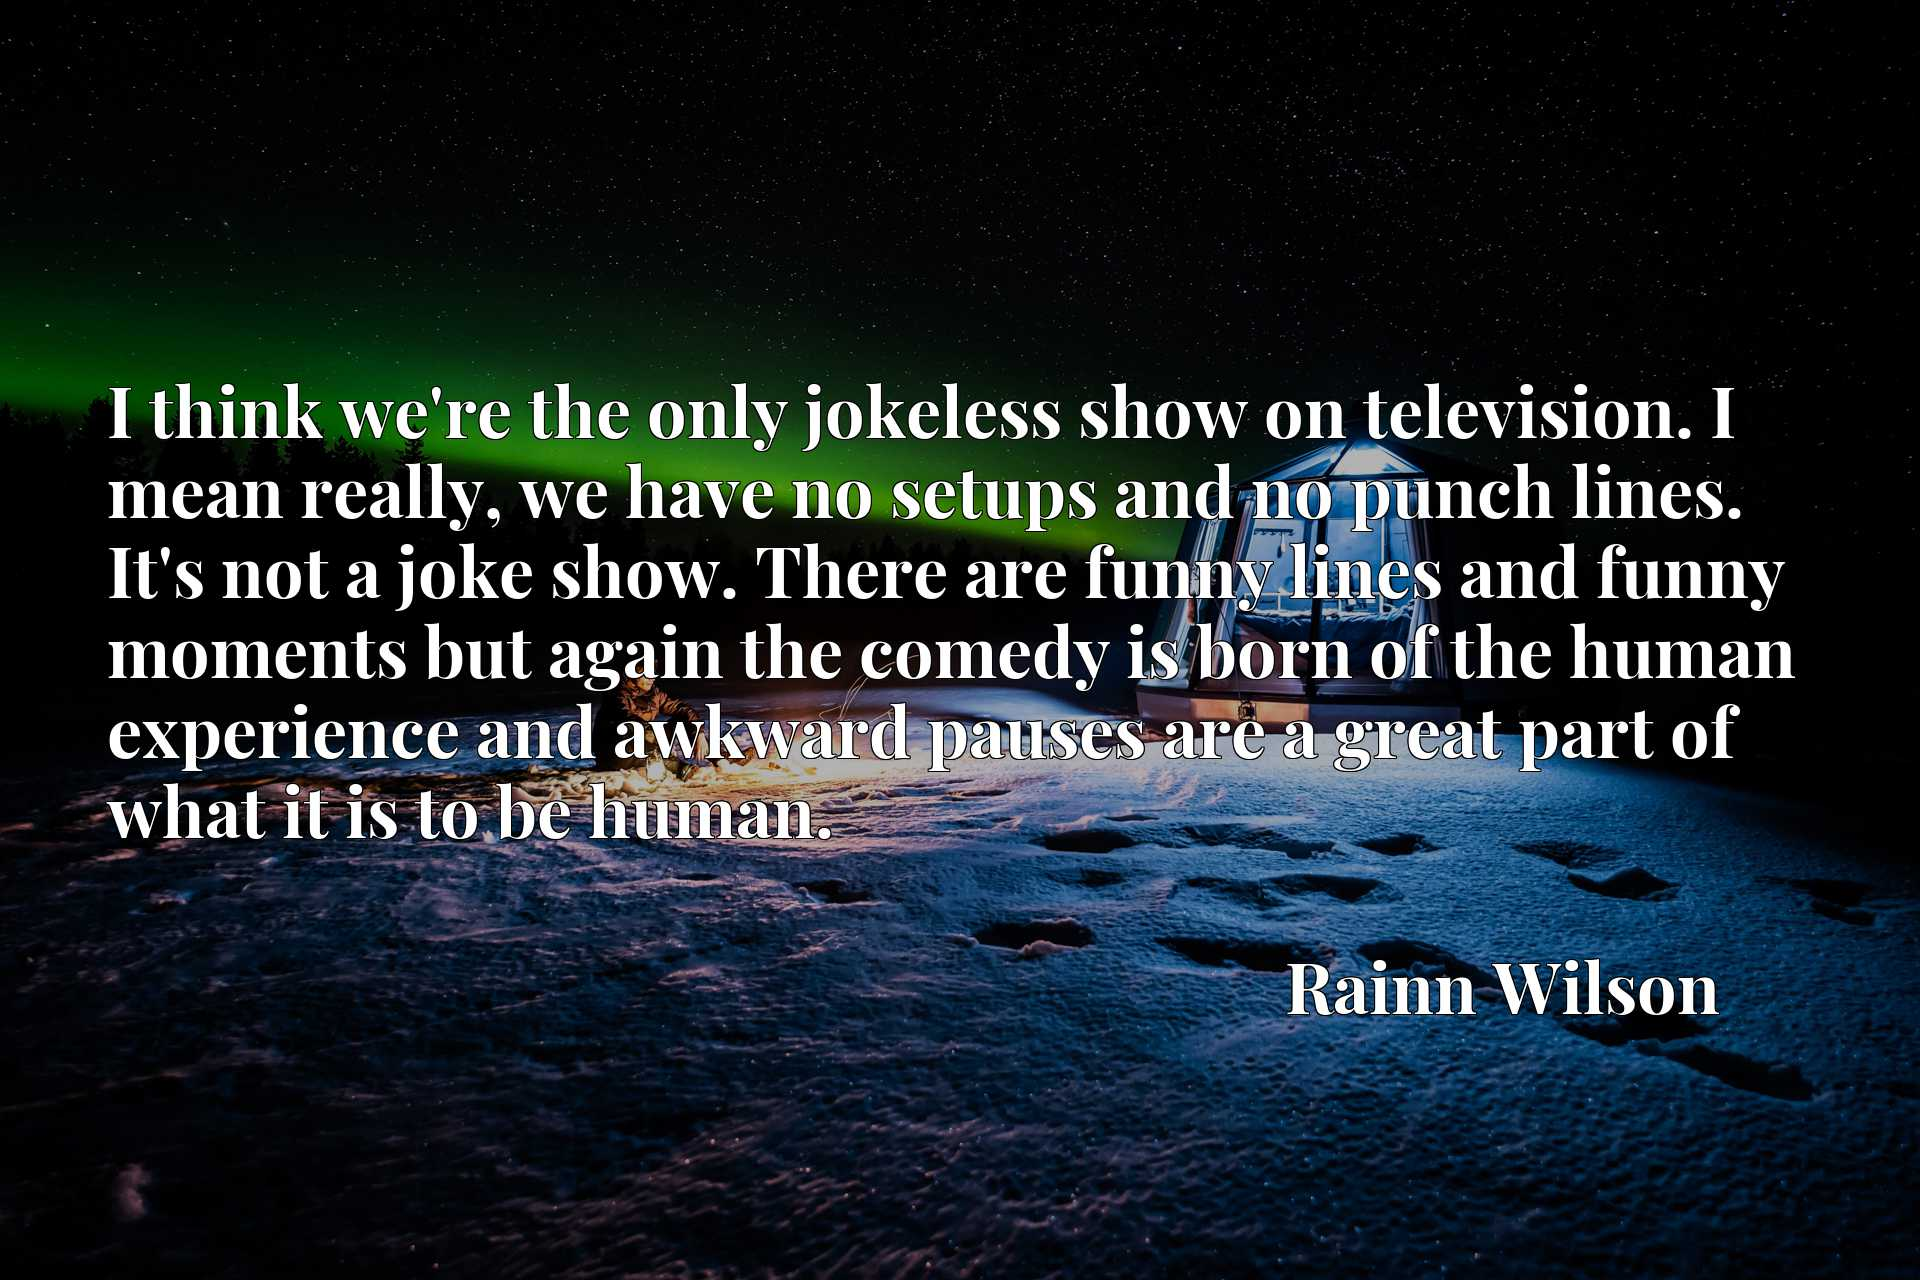 I think we're the only jokeless show on television. I mean really, we have no setups and no punch lines. It's not a joke show. There are funny lines and funny moments but again the comedy is born of the human experience and awkward pauses are a great part of what it is to be human.